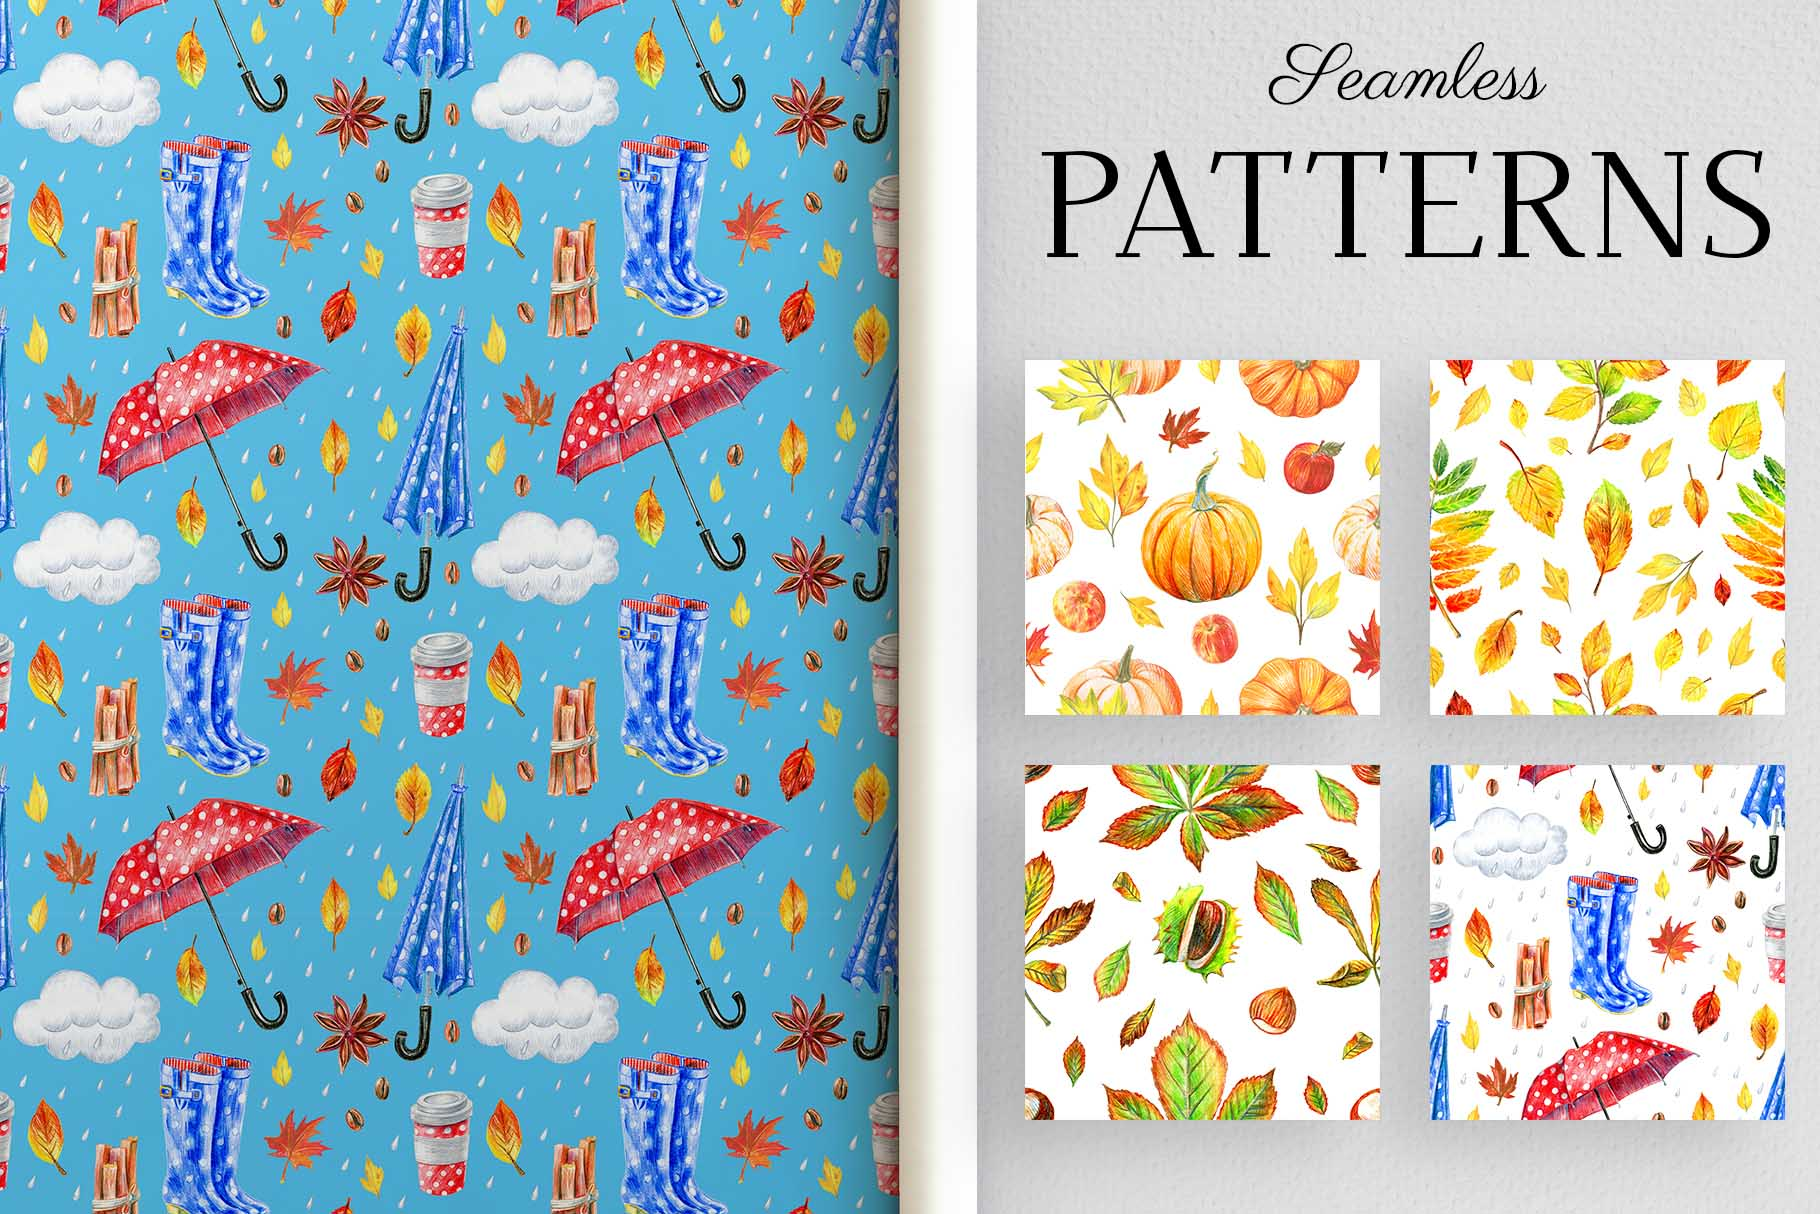 autumn patterns collections with leaves and mushrooms.